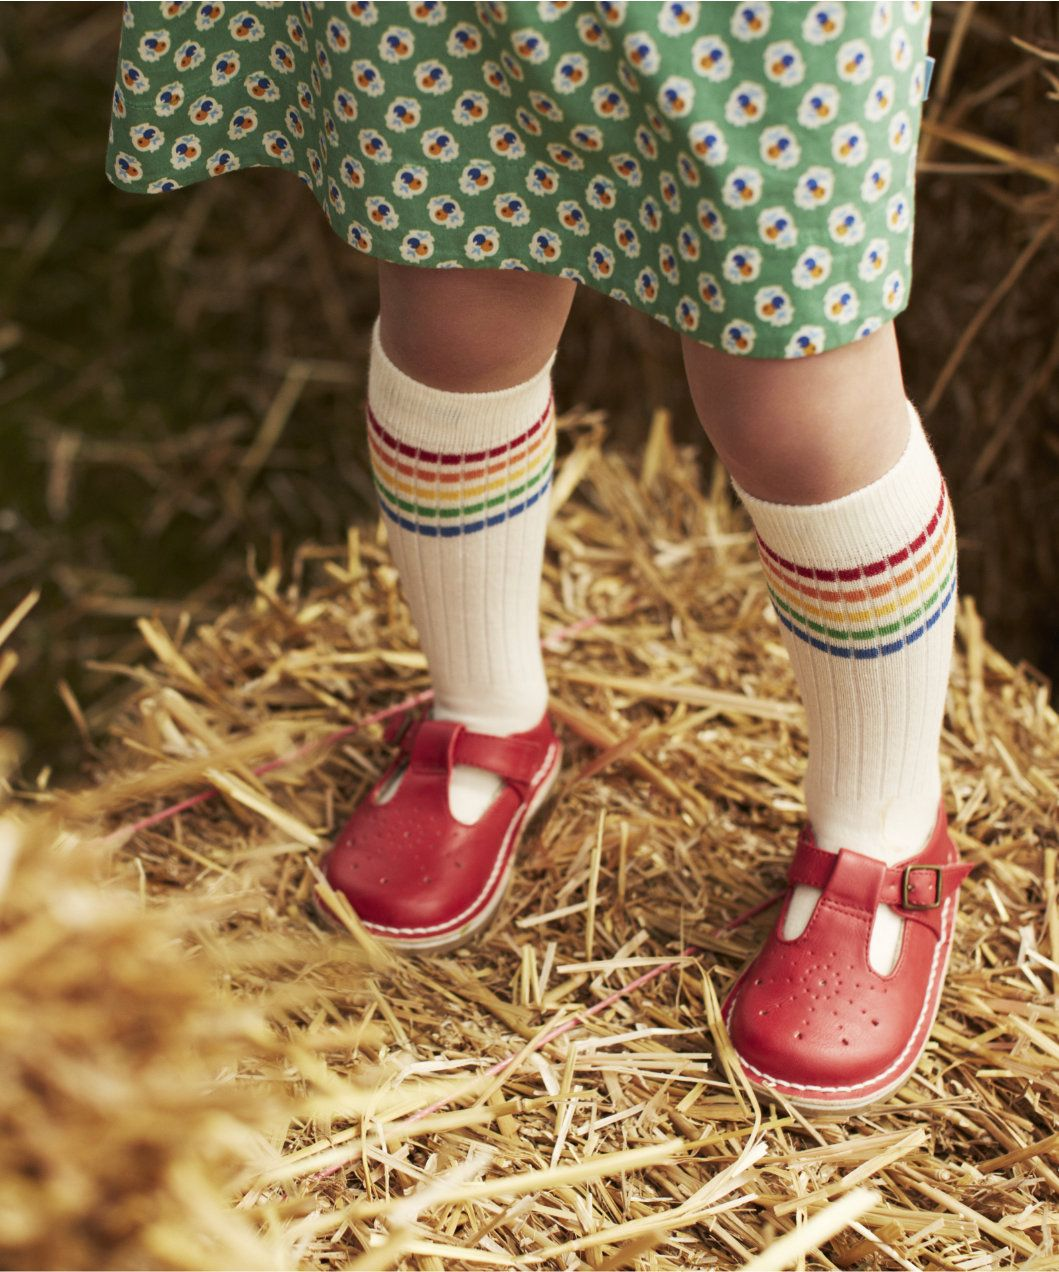 Little Bird By Jools Oliver Kids Shoes Kiddo Style Pinterest Mom N Bab Blouse Layla White Size 3t